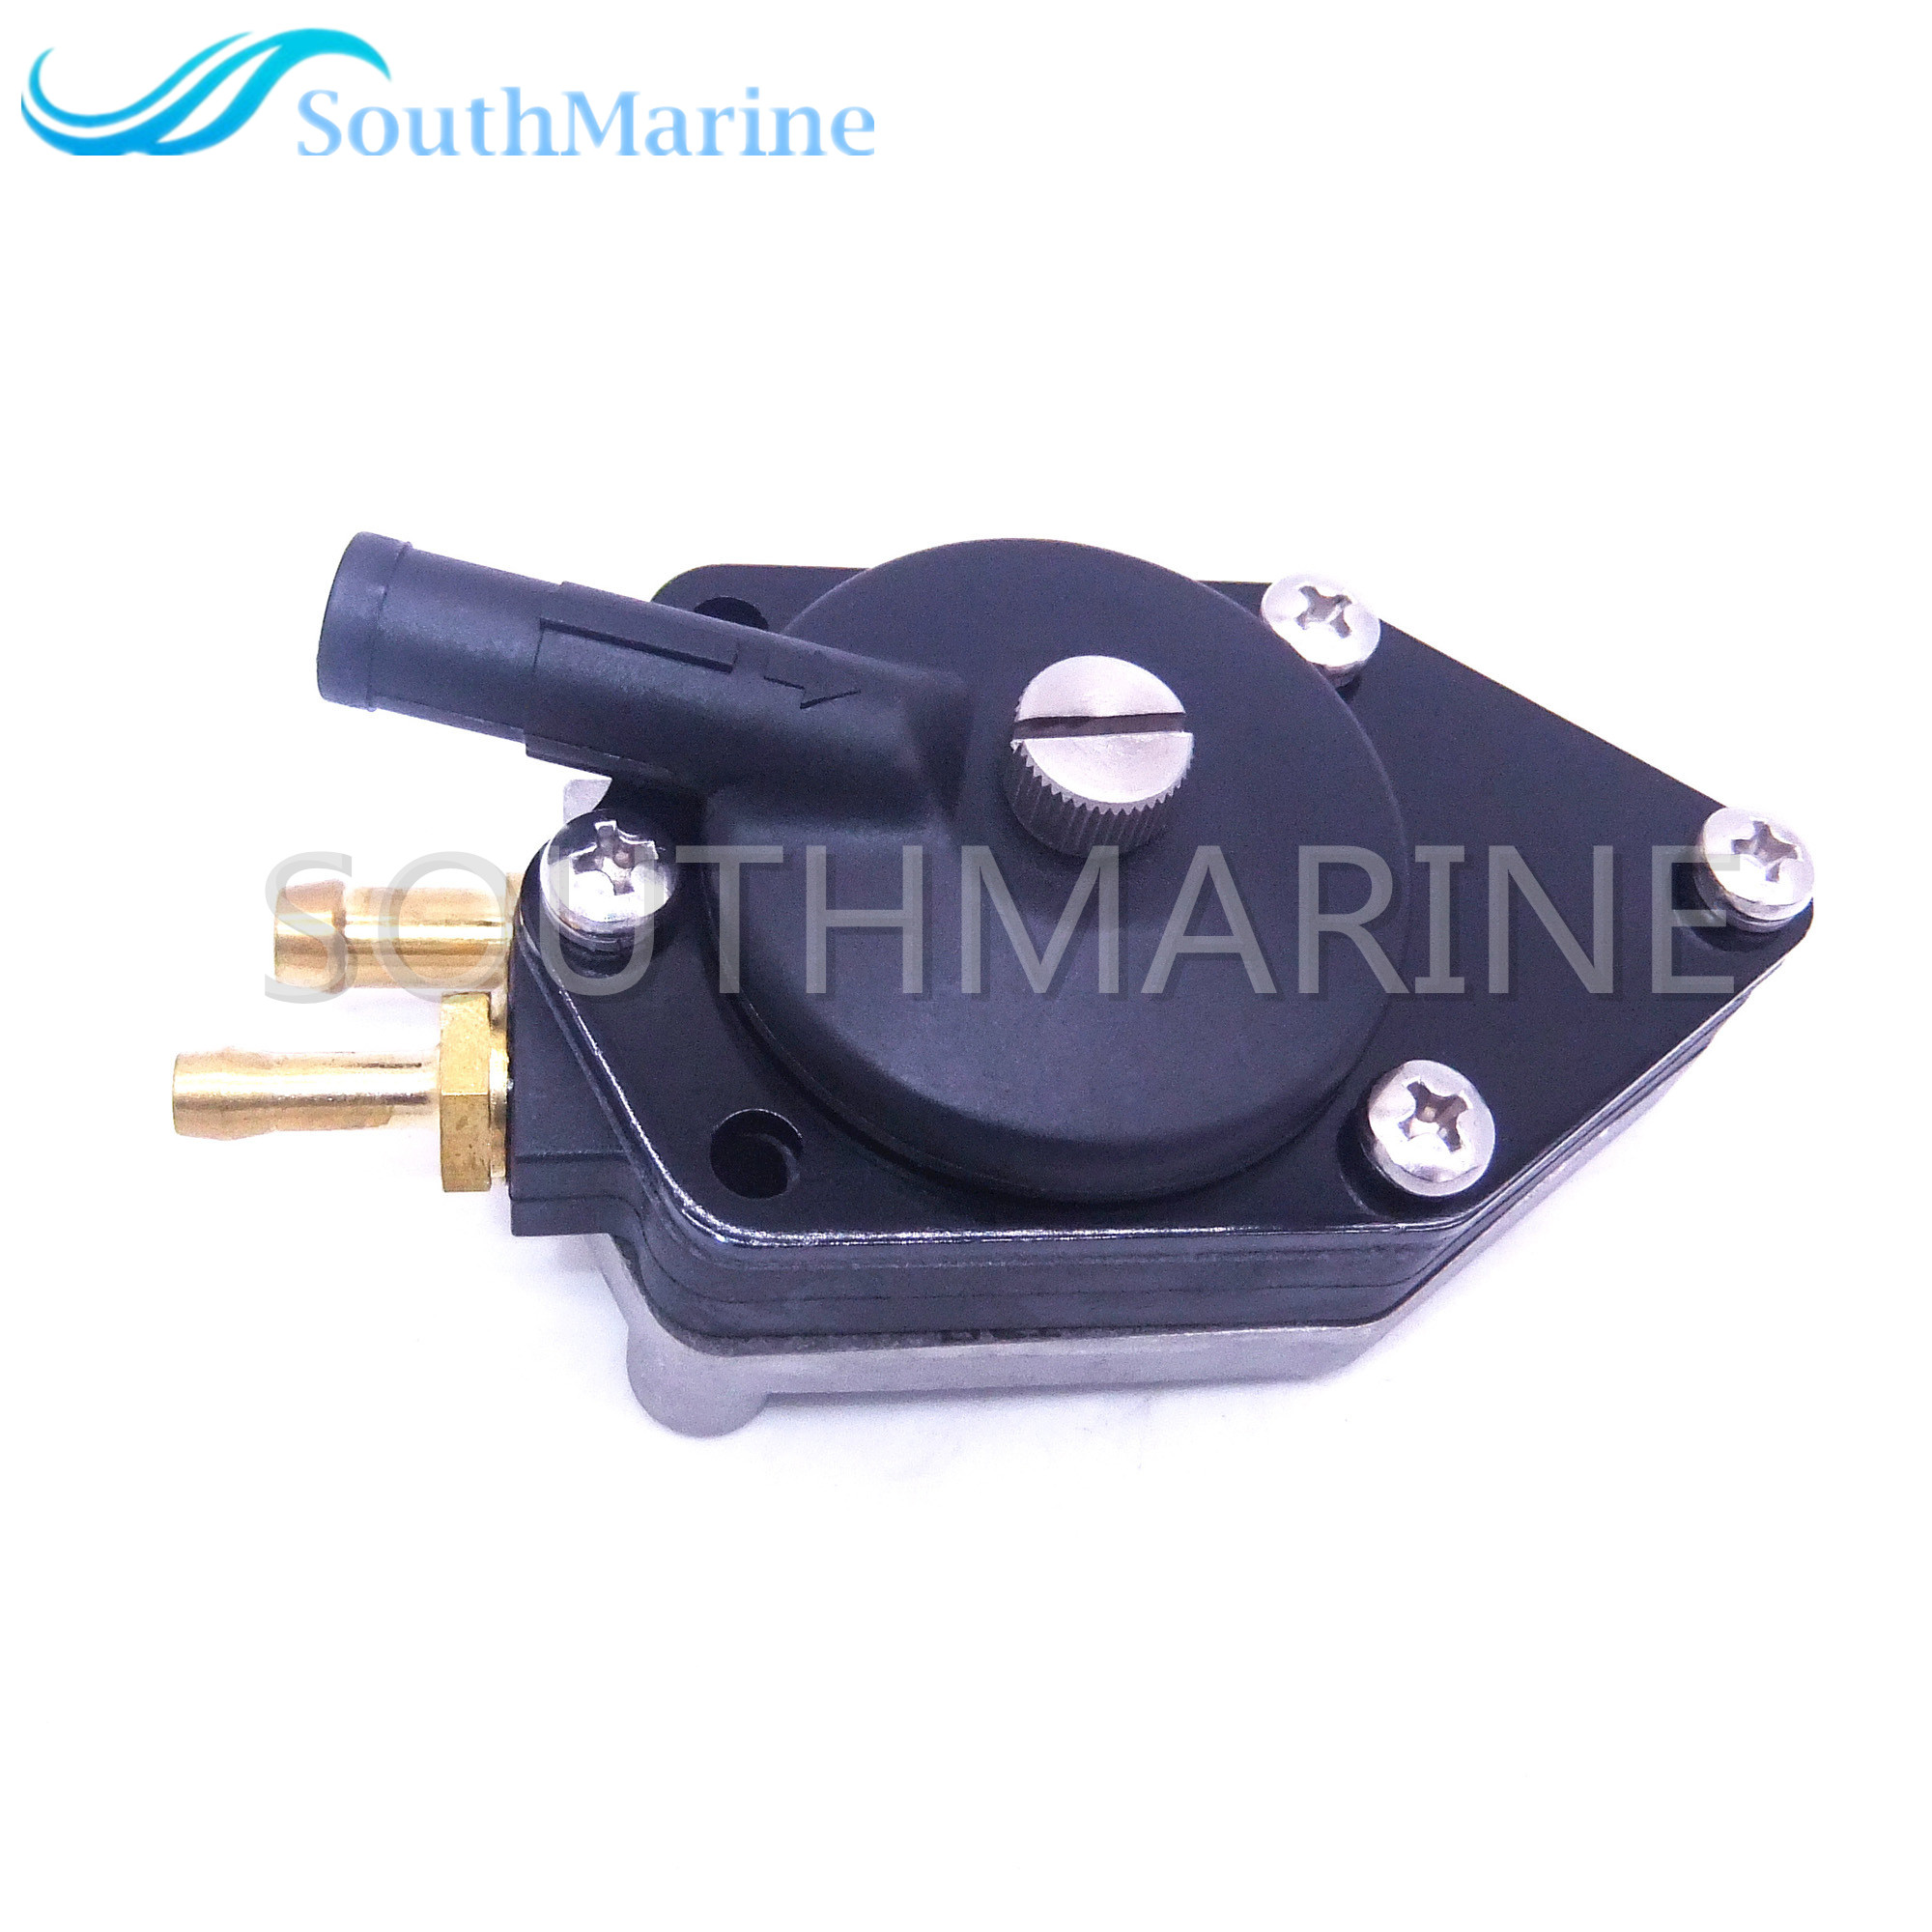 Universal Motorcycle Ignition Key Switch Safety Lanyard For Johnson Omc 5005801 Wiring Diagram 0438555 438555 0433386 433386 Fuel Pump Evinrude Brp 20 30hp Boat Motor